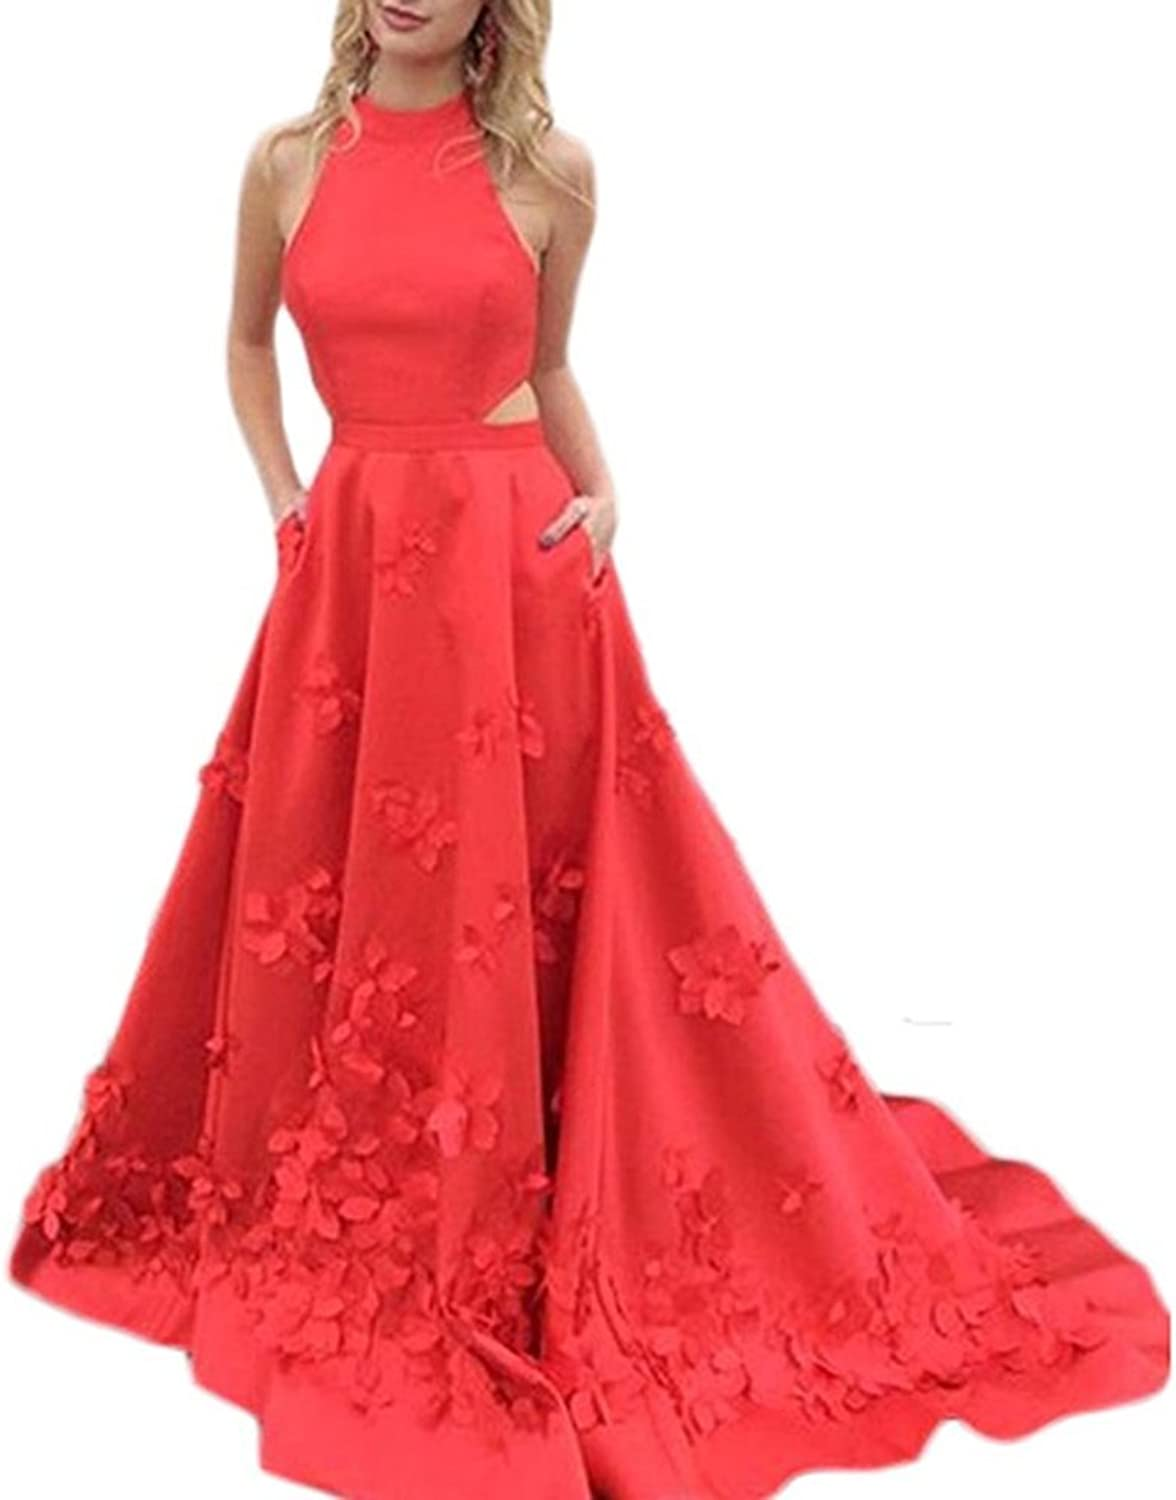 ALine High Neck Two Pieces Prom Dresses Long Celebrity Red Carpet Gowns